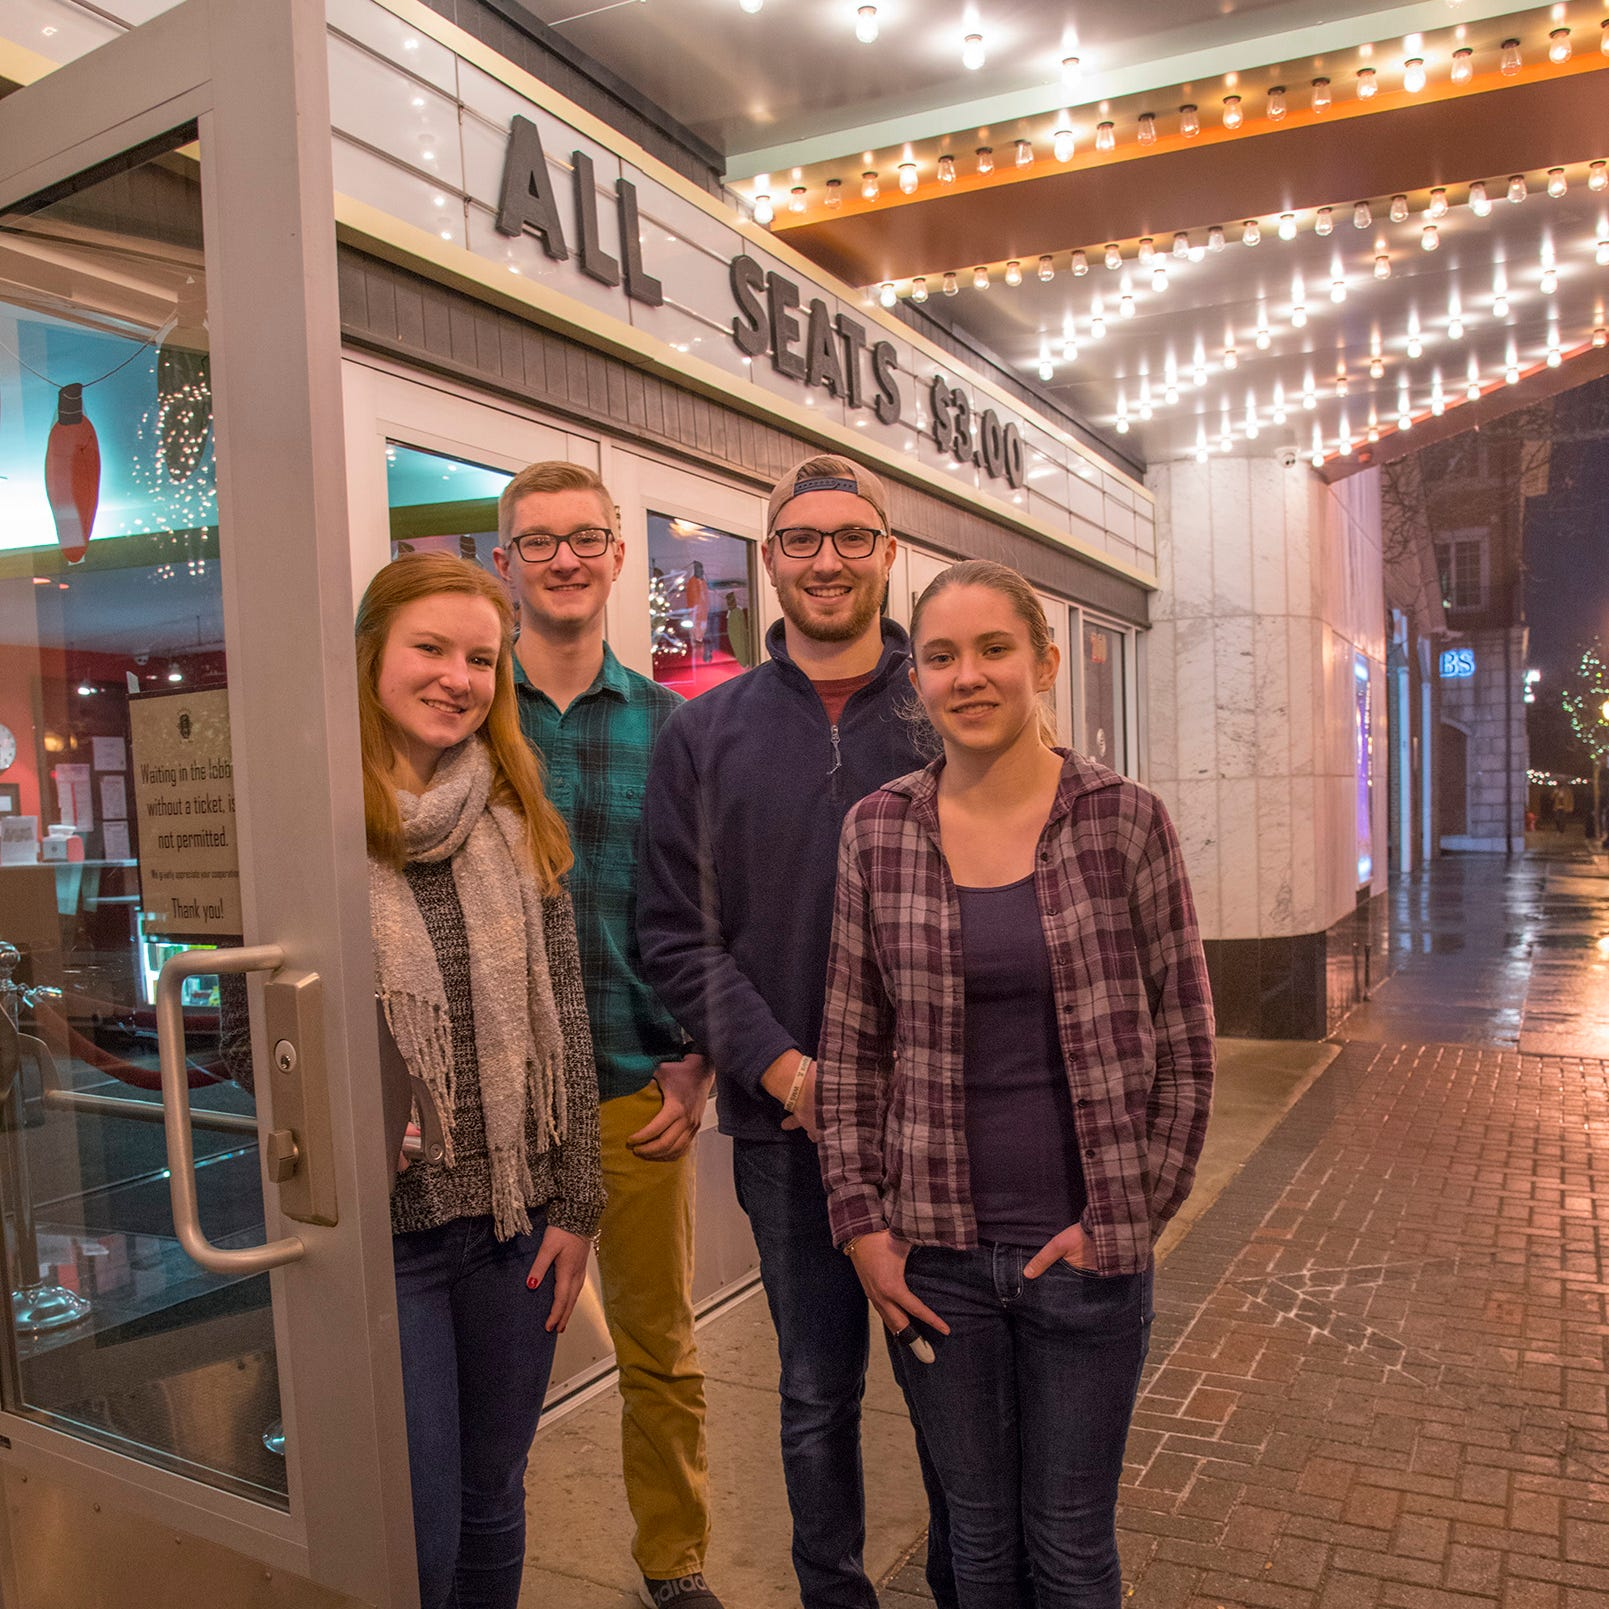 Family has unique connection with Plymouth's Penn Theatre